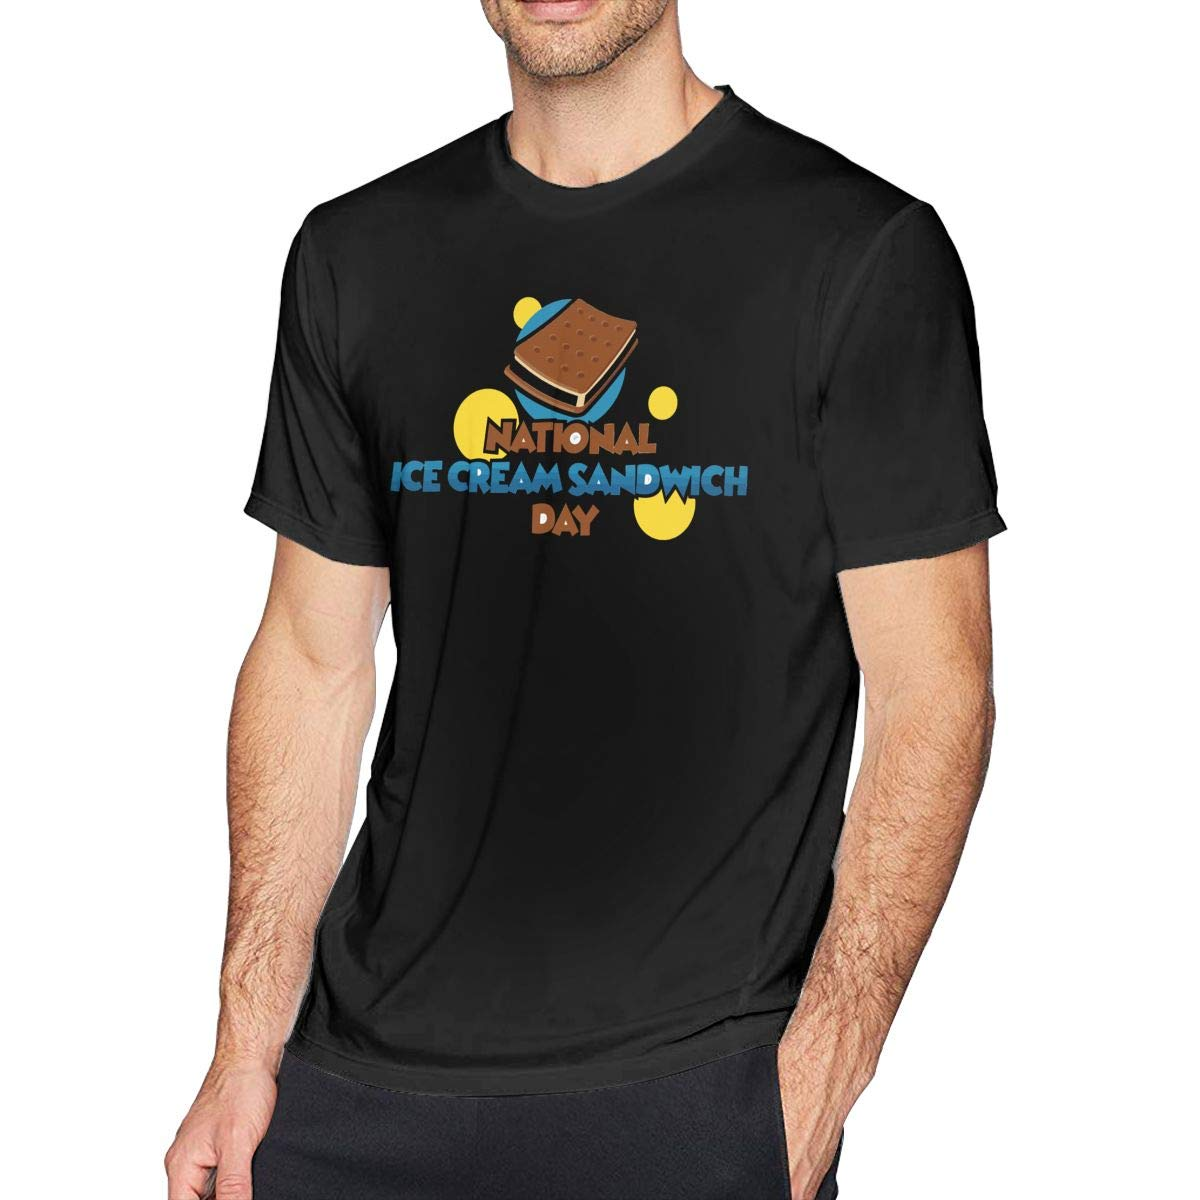 National Ice Cream Sandwich Day Black Shirt Organic Breathable Solid T Shirt